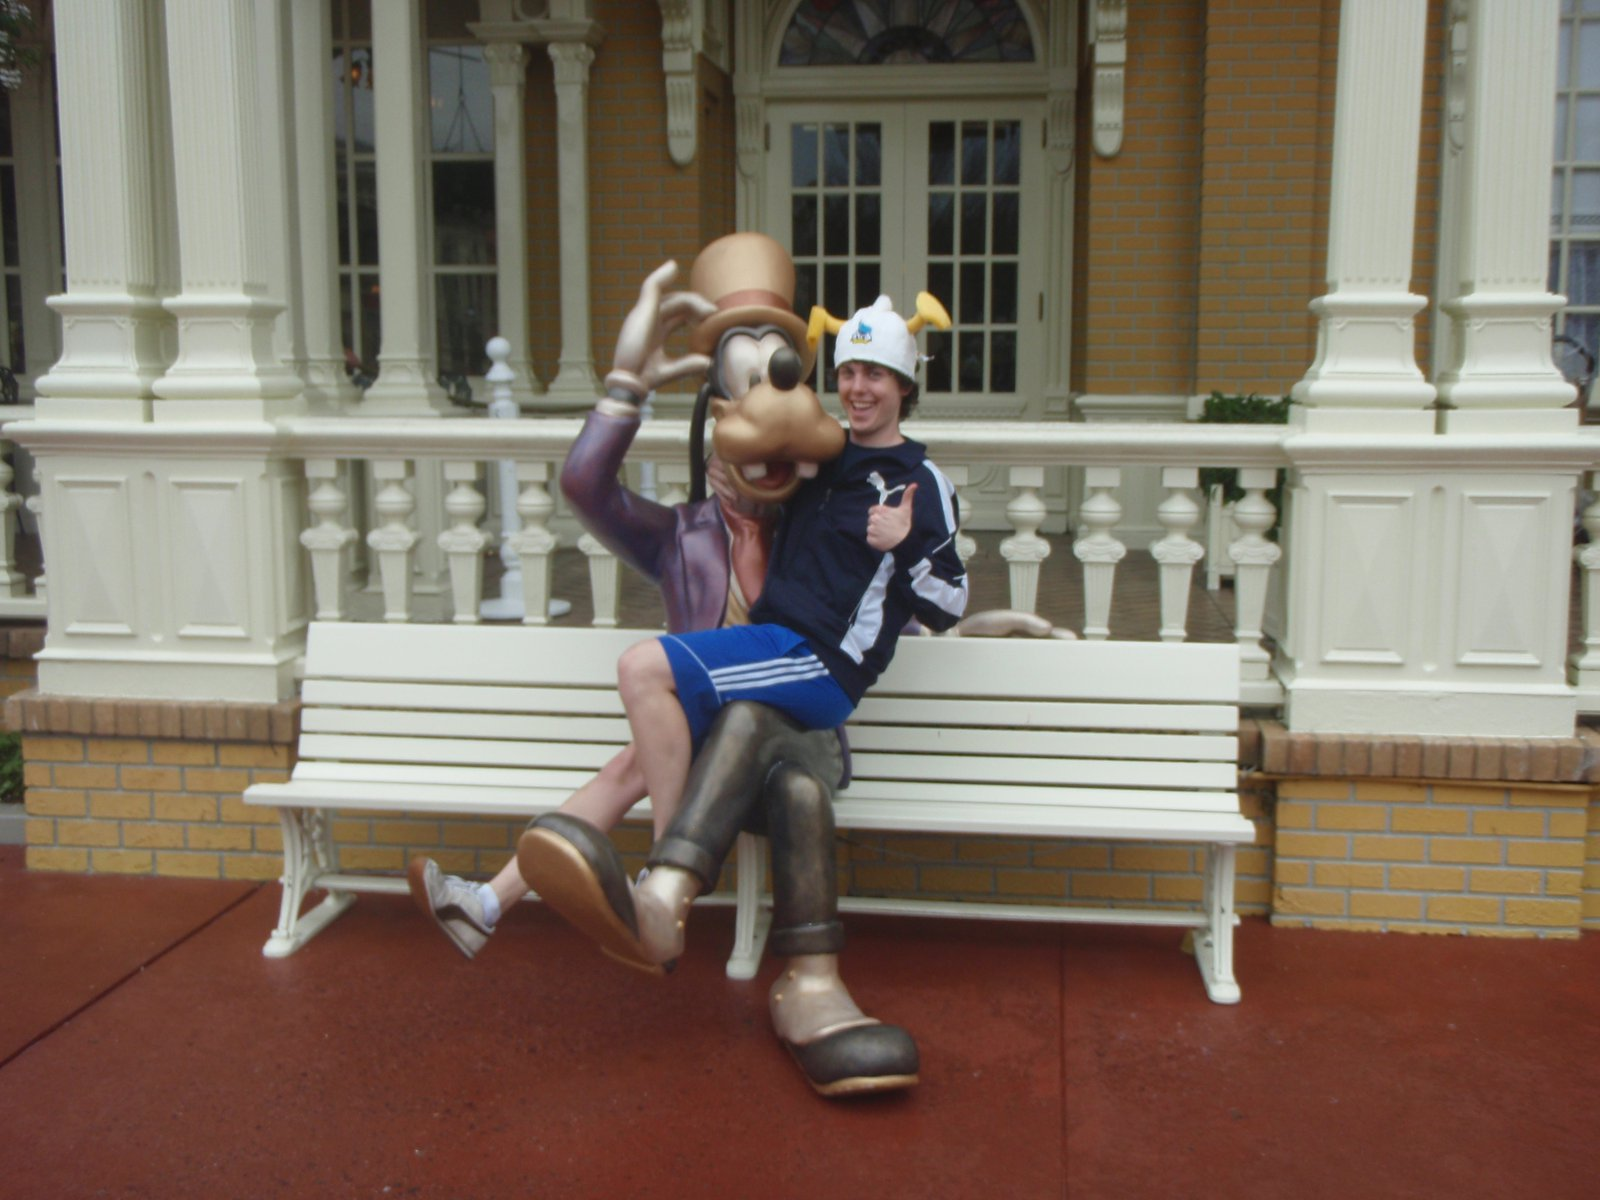 Chillin with Goofy